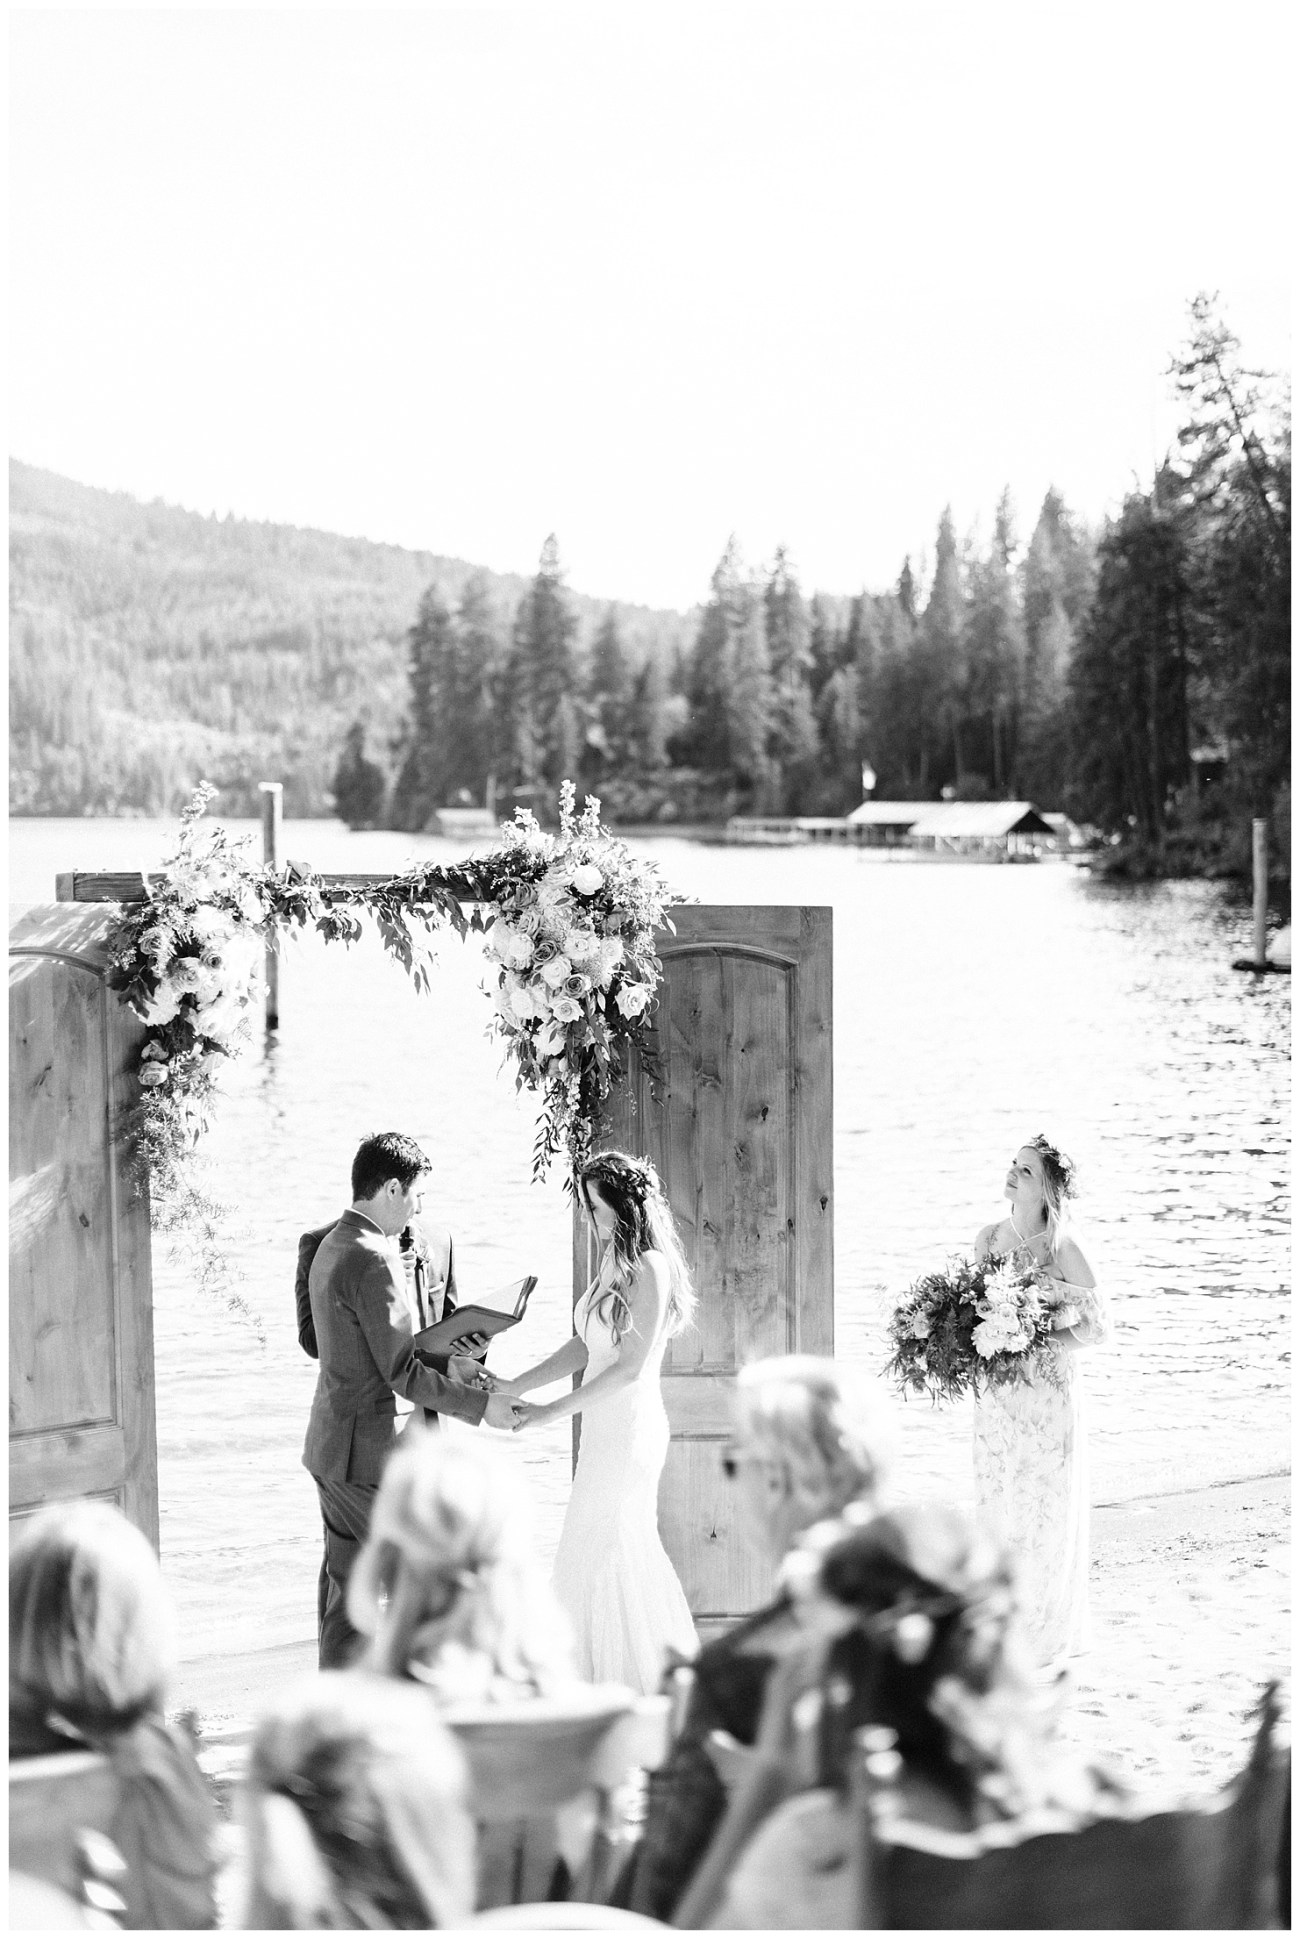 Britney & Stratton's wedding ceremony on Lake Coeur d'Alene taken by Forthright Photo